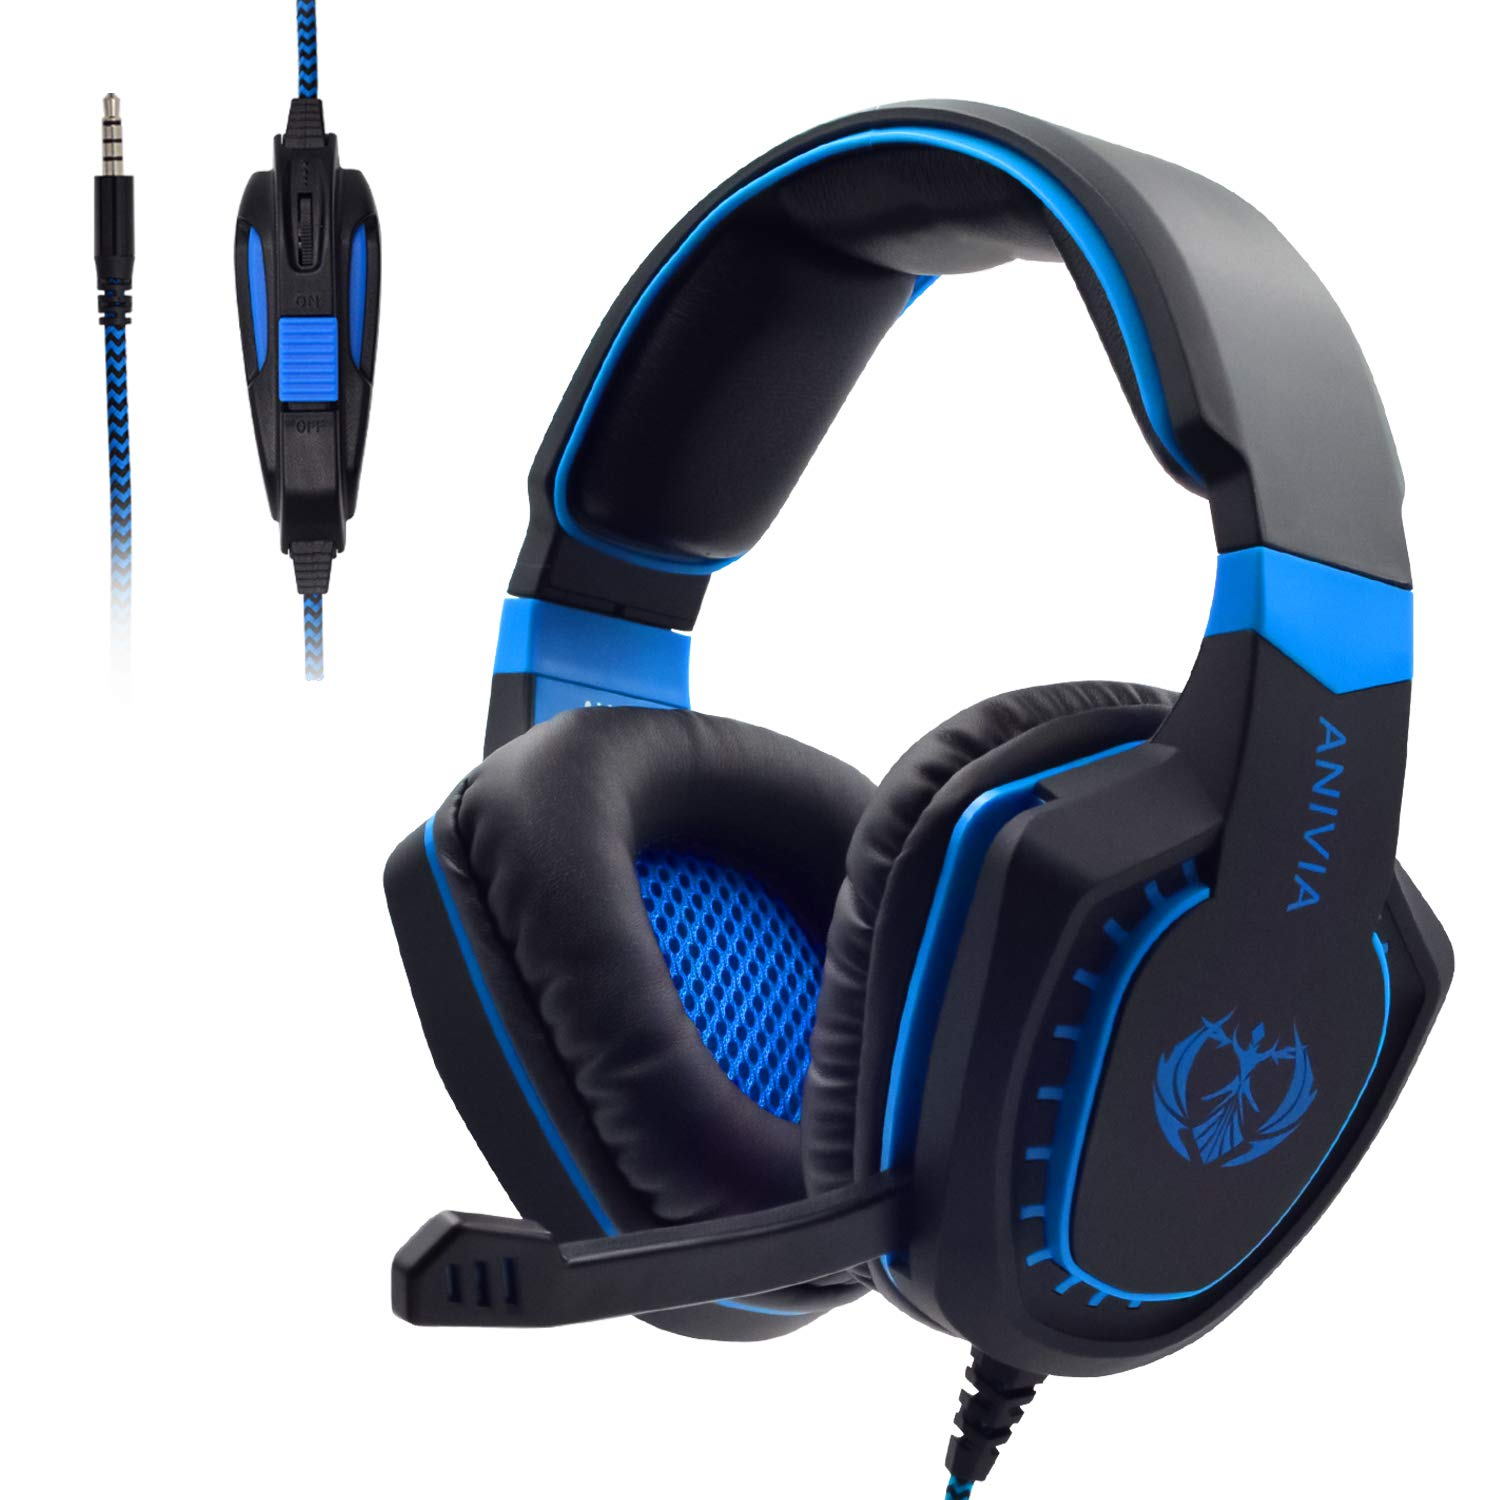 Special price Stereo Limited time trial price Gaming Headset for PS4 Wired Headphone PC Mic with